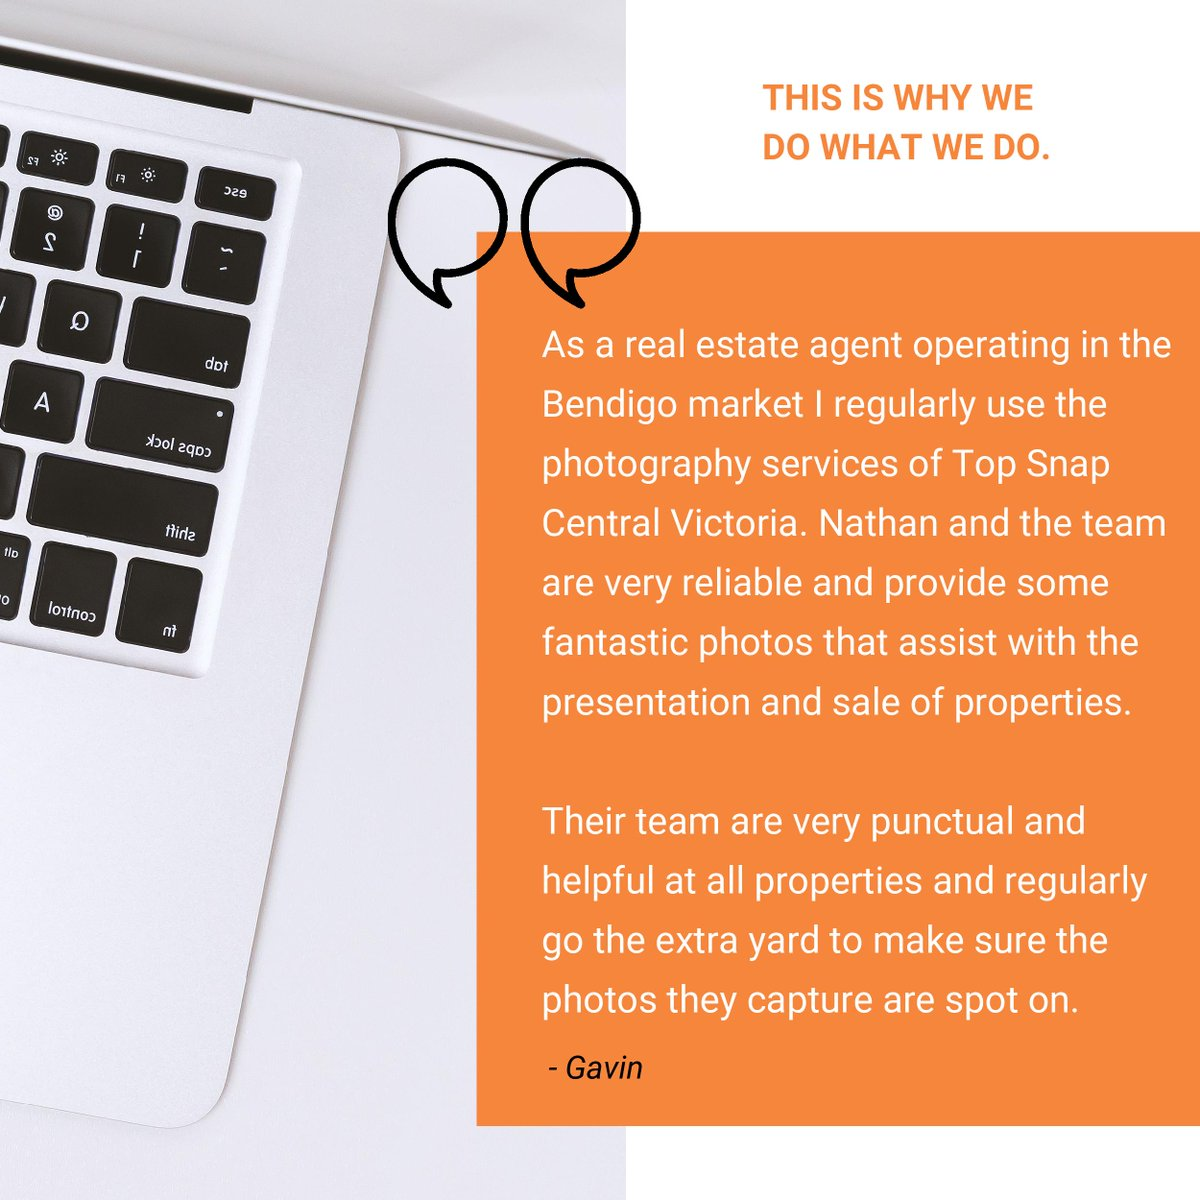 What our customers are saying about Top Snap Central Victoria! 👍🏼 . #topsnap #realestate #photography #happycustomers #testimonial #feedback #reviews #whatourcustomerssay #topsnaptestimonial #whywedowhatwedo https://t.co/YyS2wyhfgp